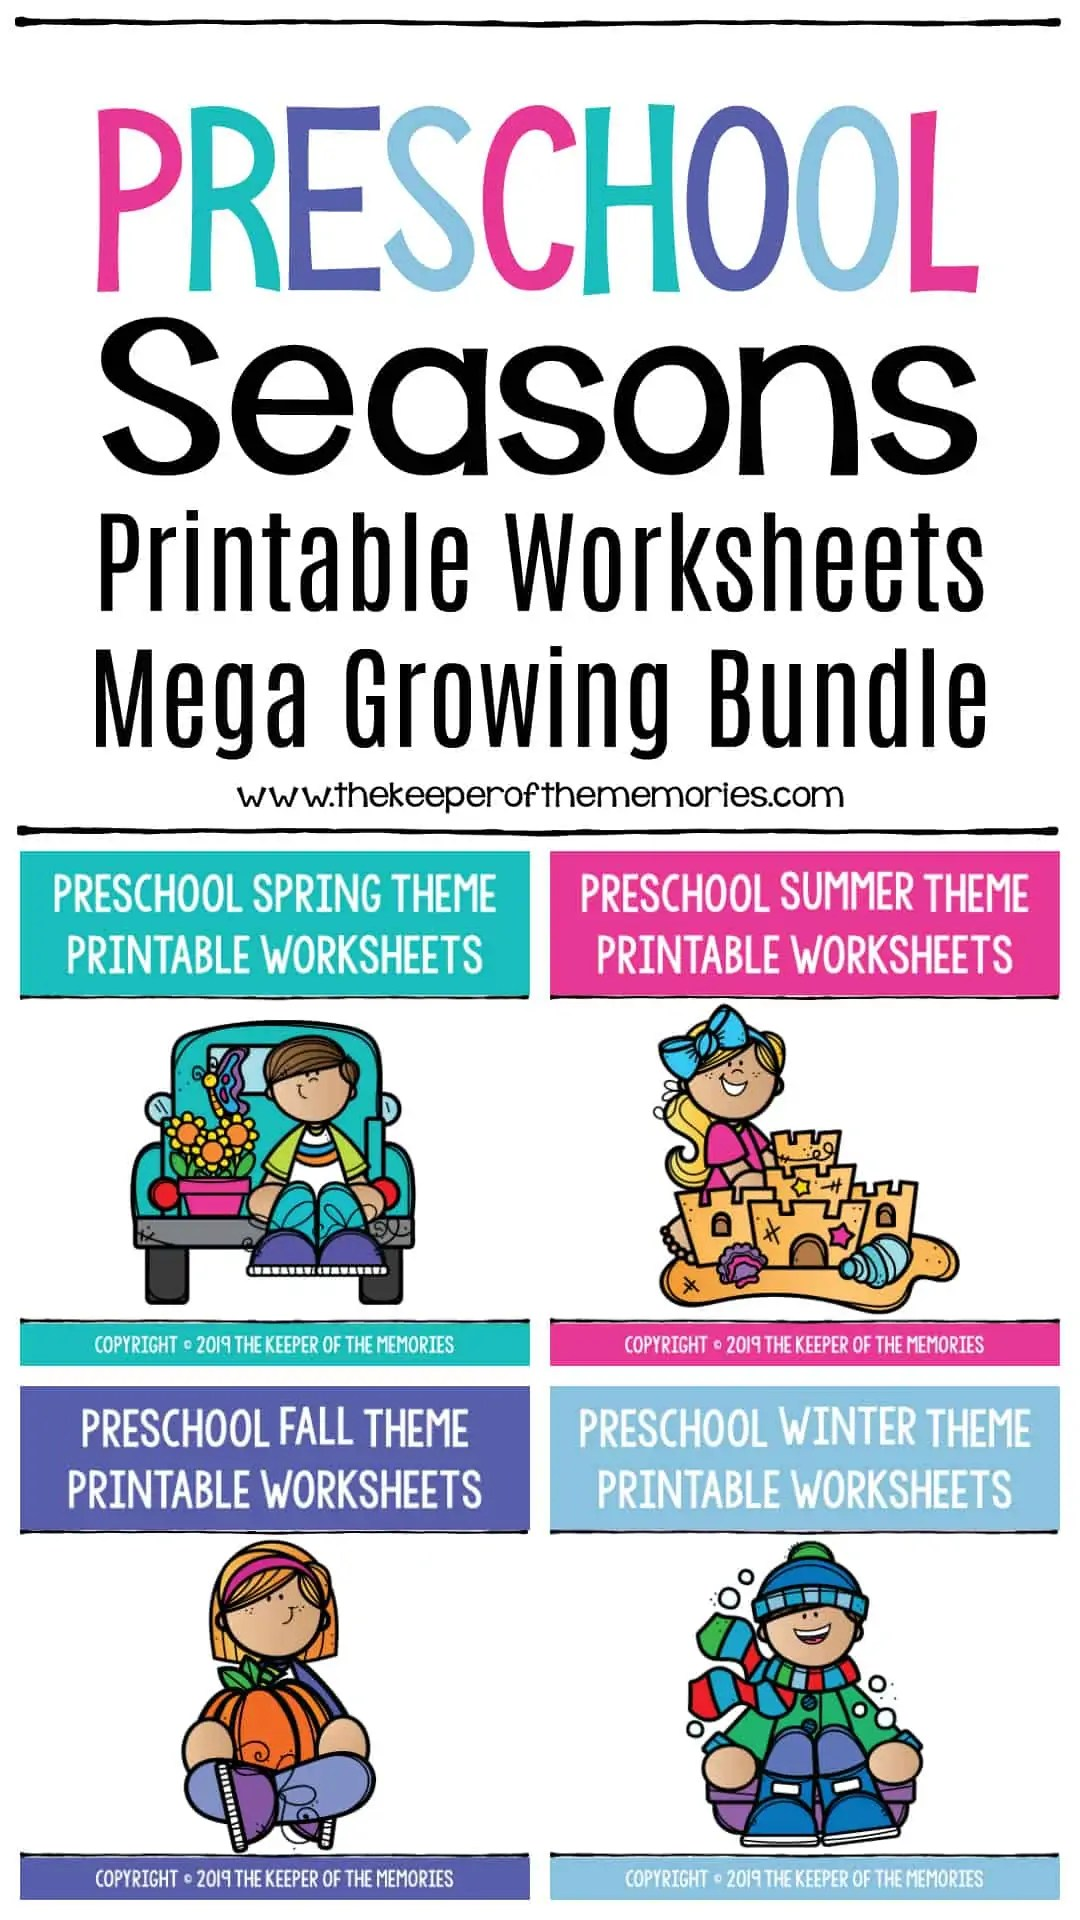 Preschool Seasons Printable Worksheets Mega Bundle